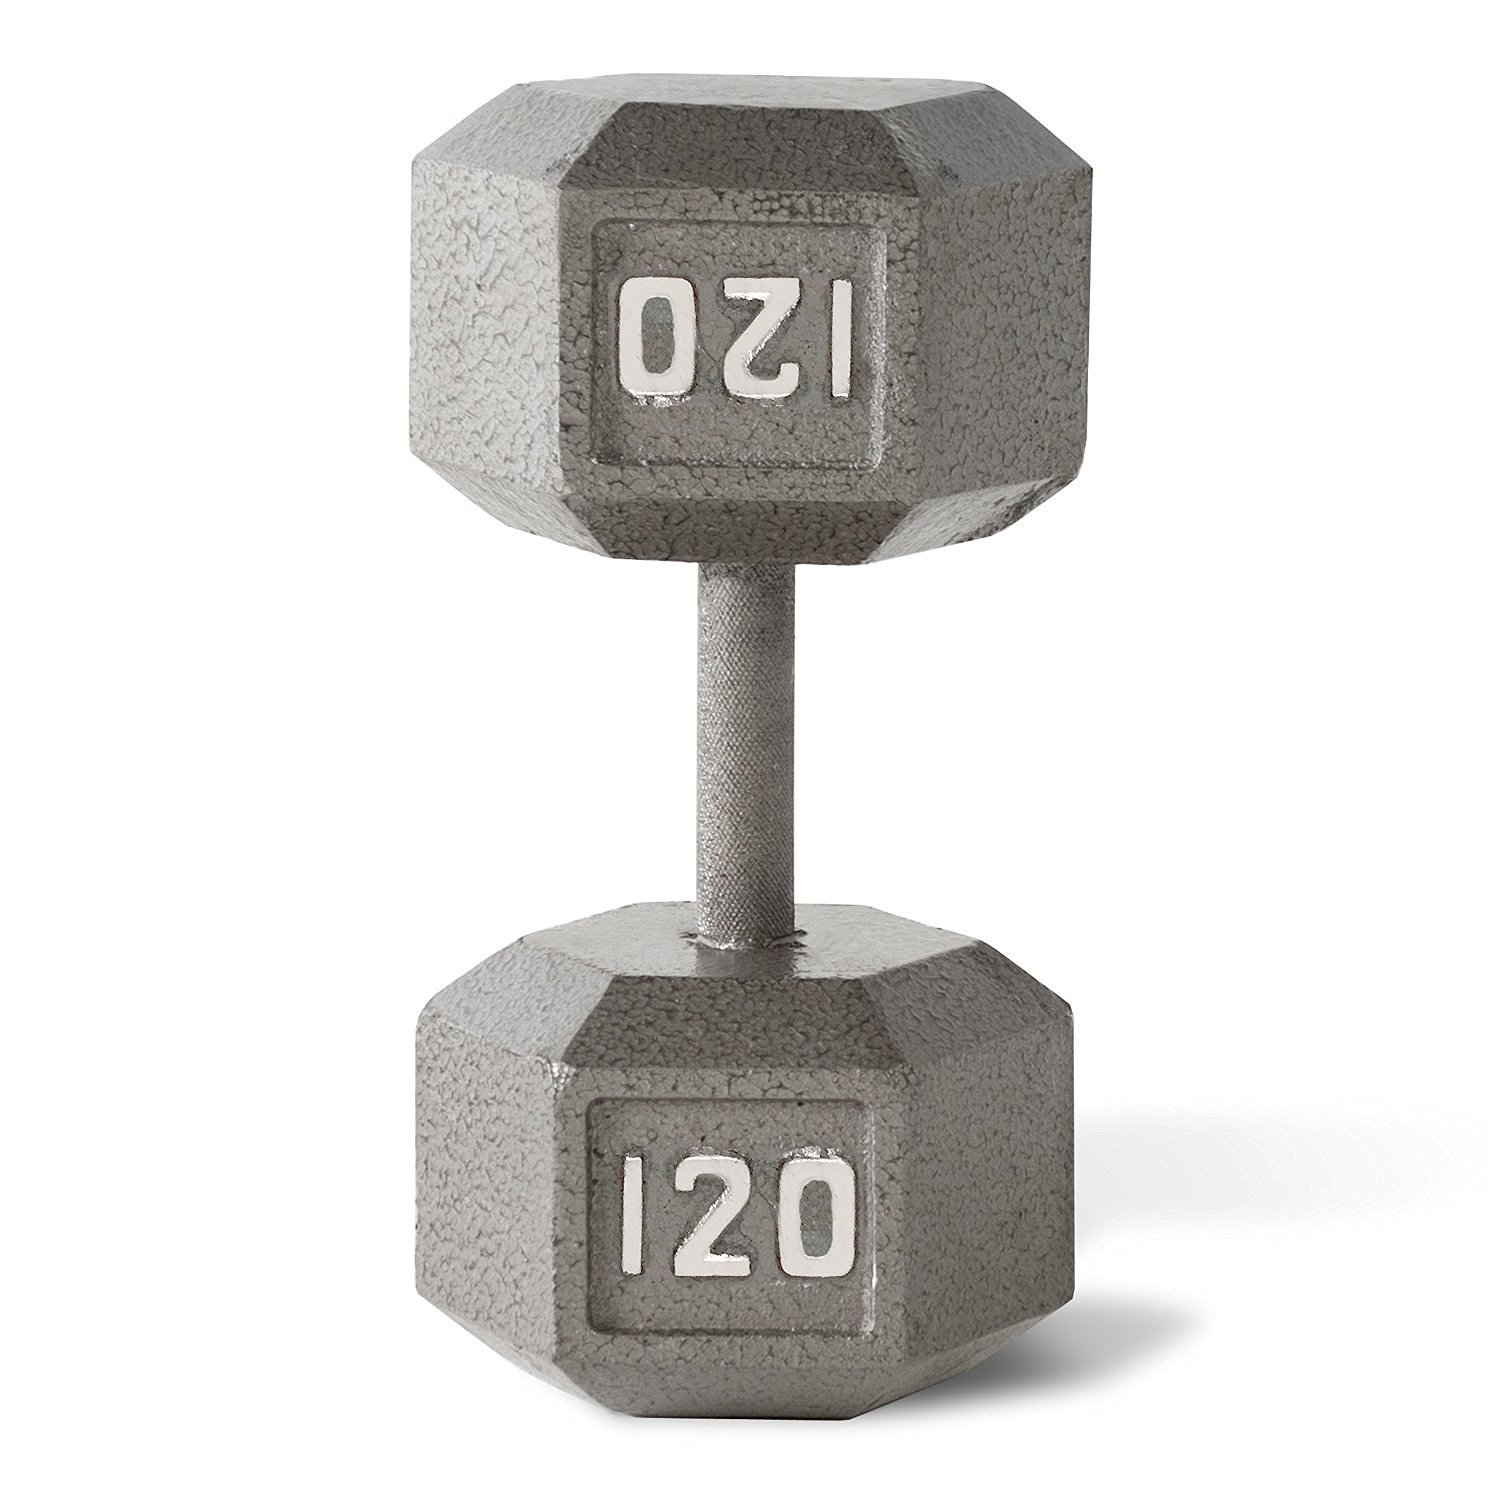 CAP Barbell SDG Economy Cast Iron Hex Dumbbell Set - 105, 110, 115, 120 lbs (4 pairs) - Extra Heavy Dumbbell Expansion Set